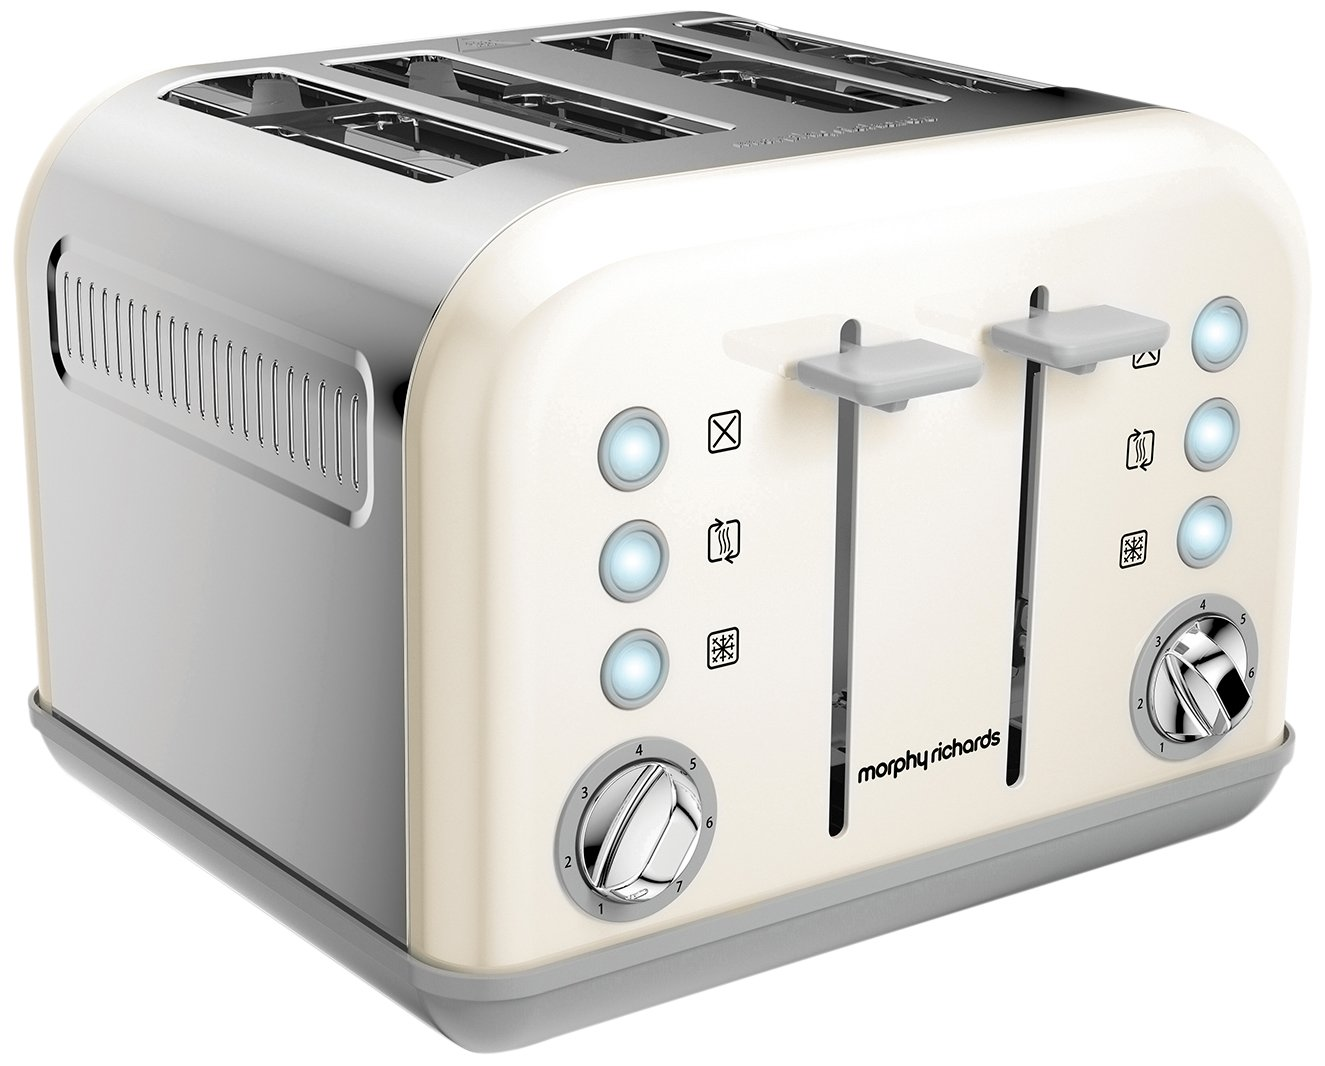 Black Morphy Richards Accents Special Edition 4 Slice Toaster